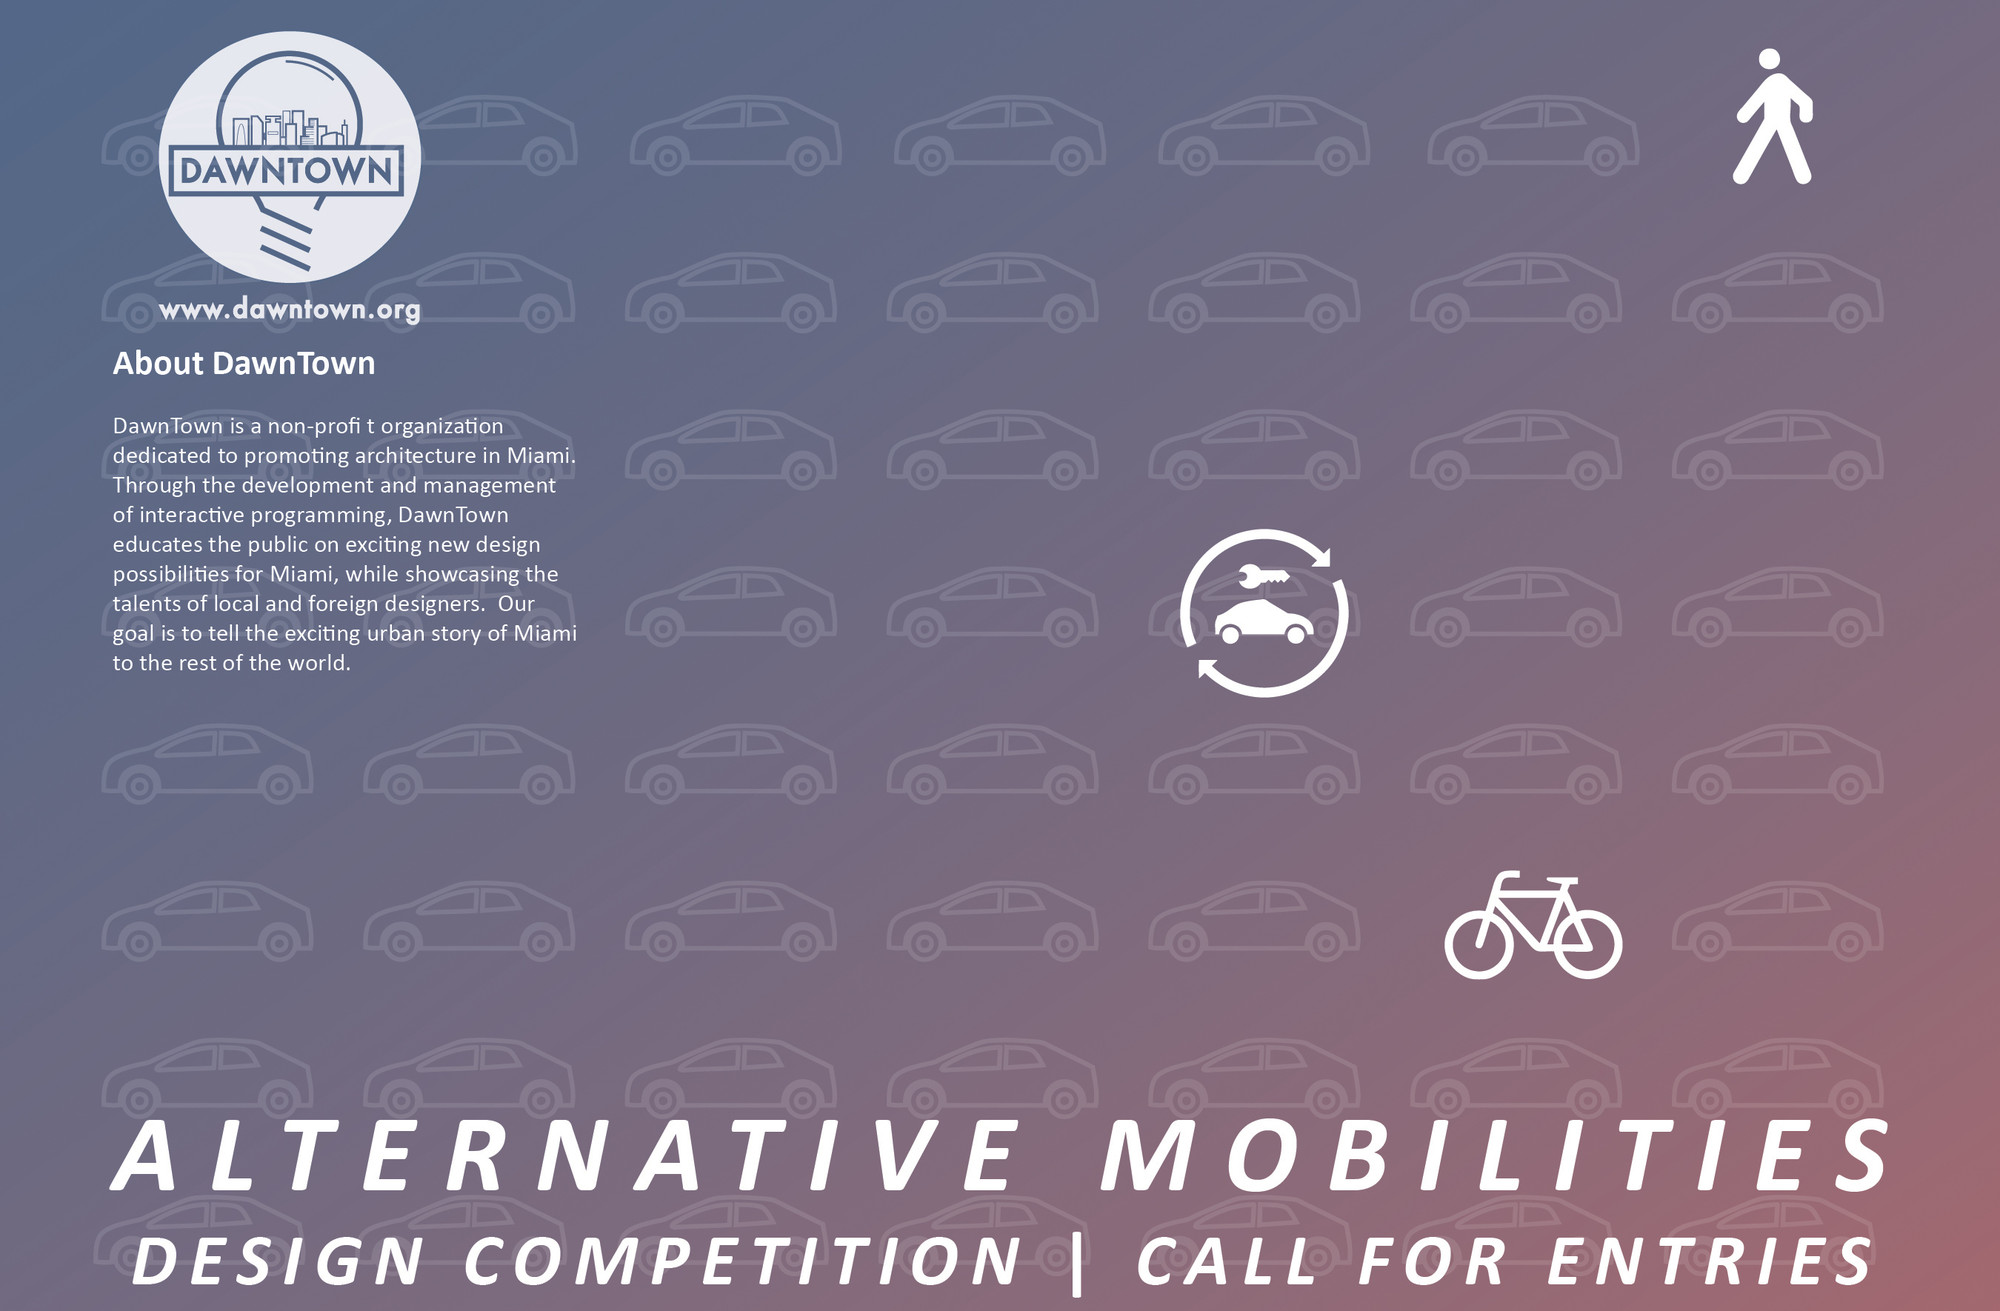 DawnTown - Architecture Ideas Competition: Alternative Mobilities